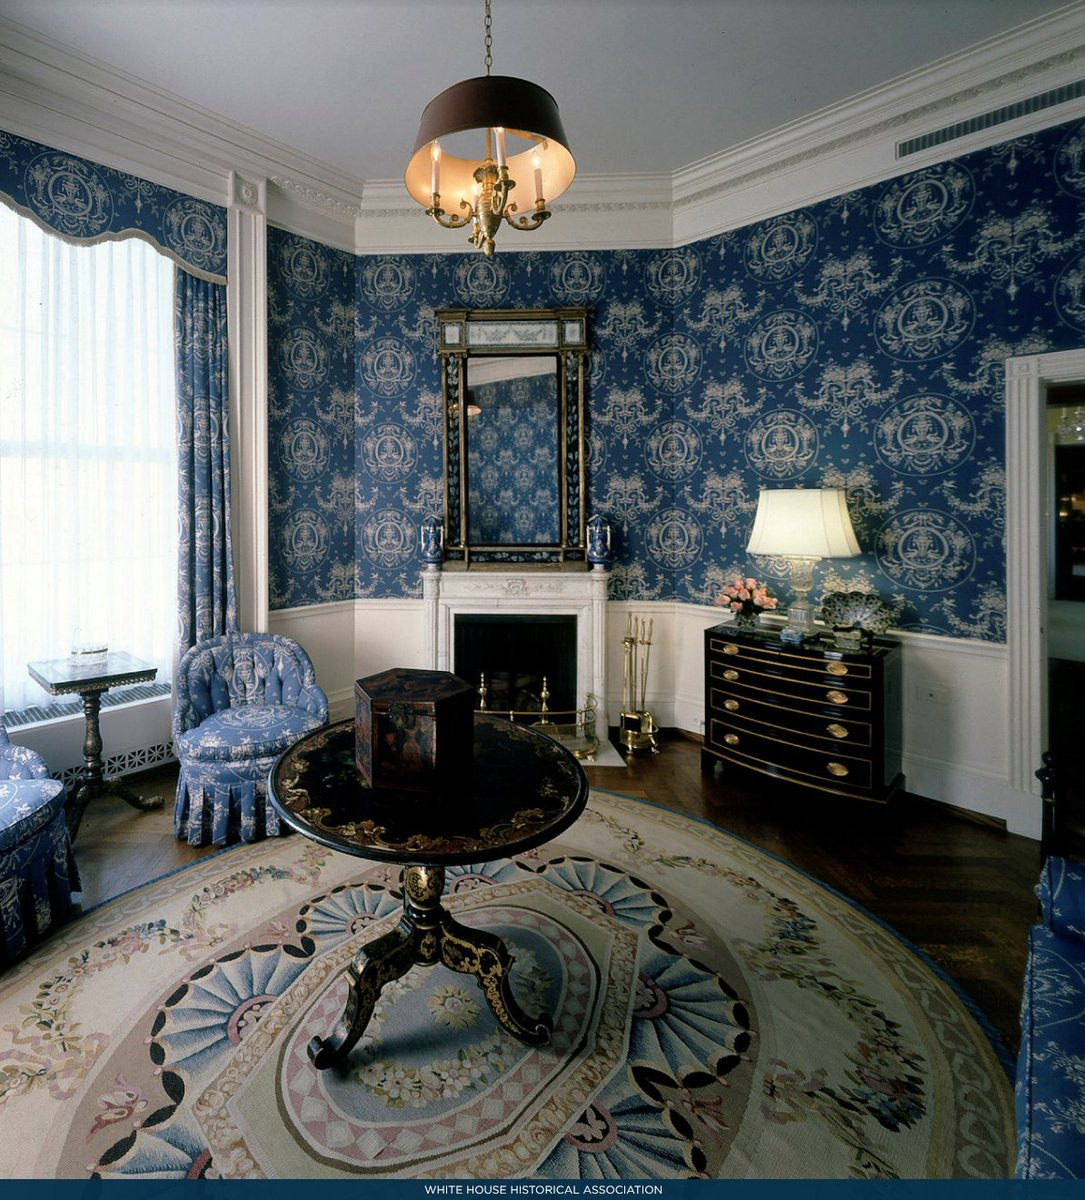 From 1962-1963, First Lady Jacqueline Kennedy redecorated the room, adding the dark blue and white cotton wallpaper and black and gold ...